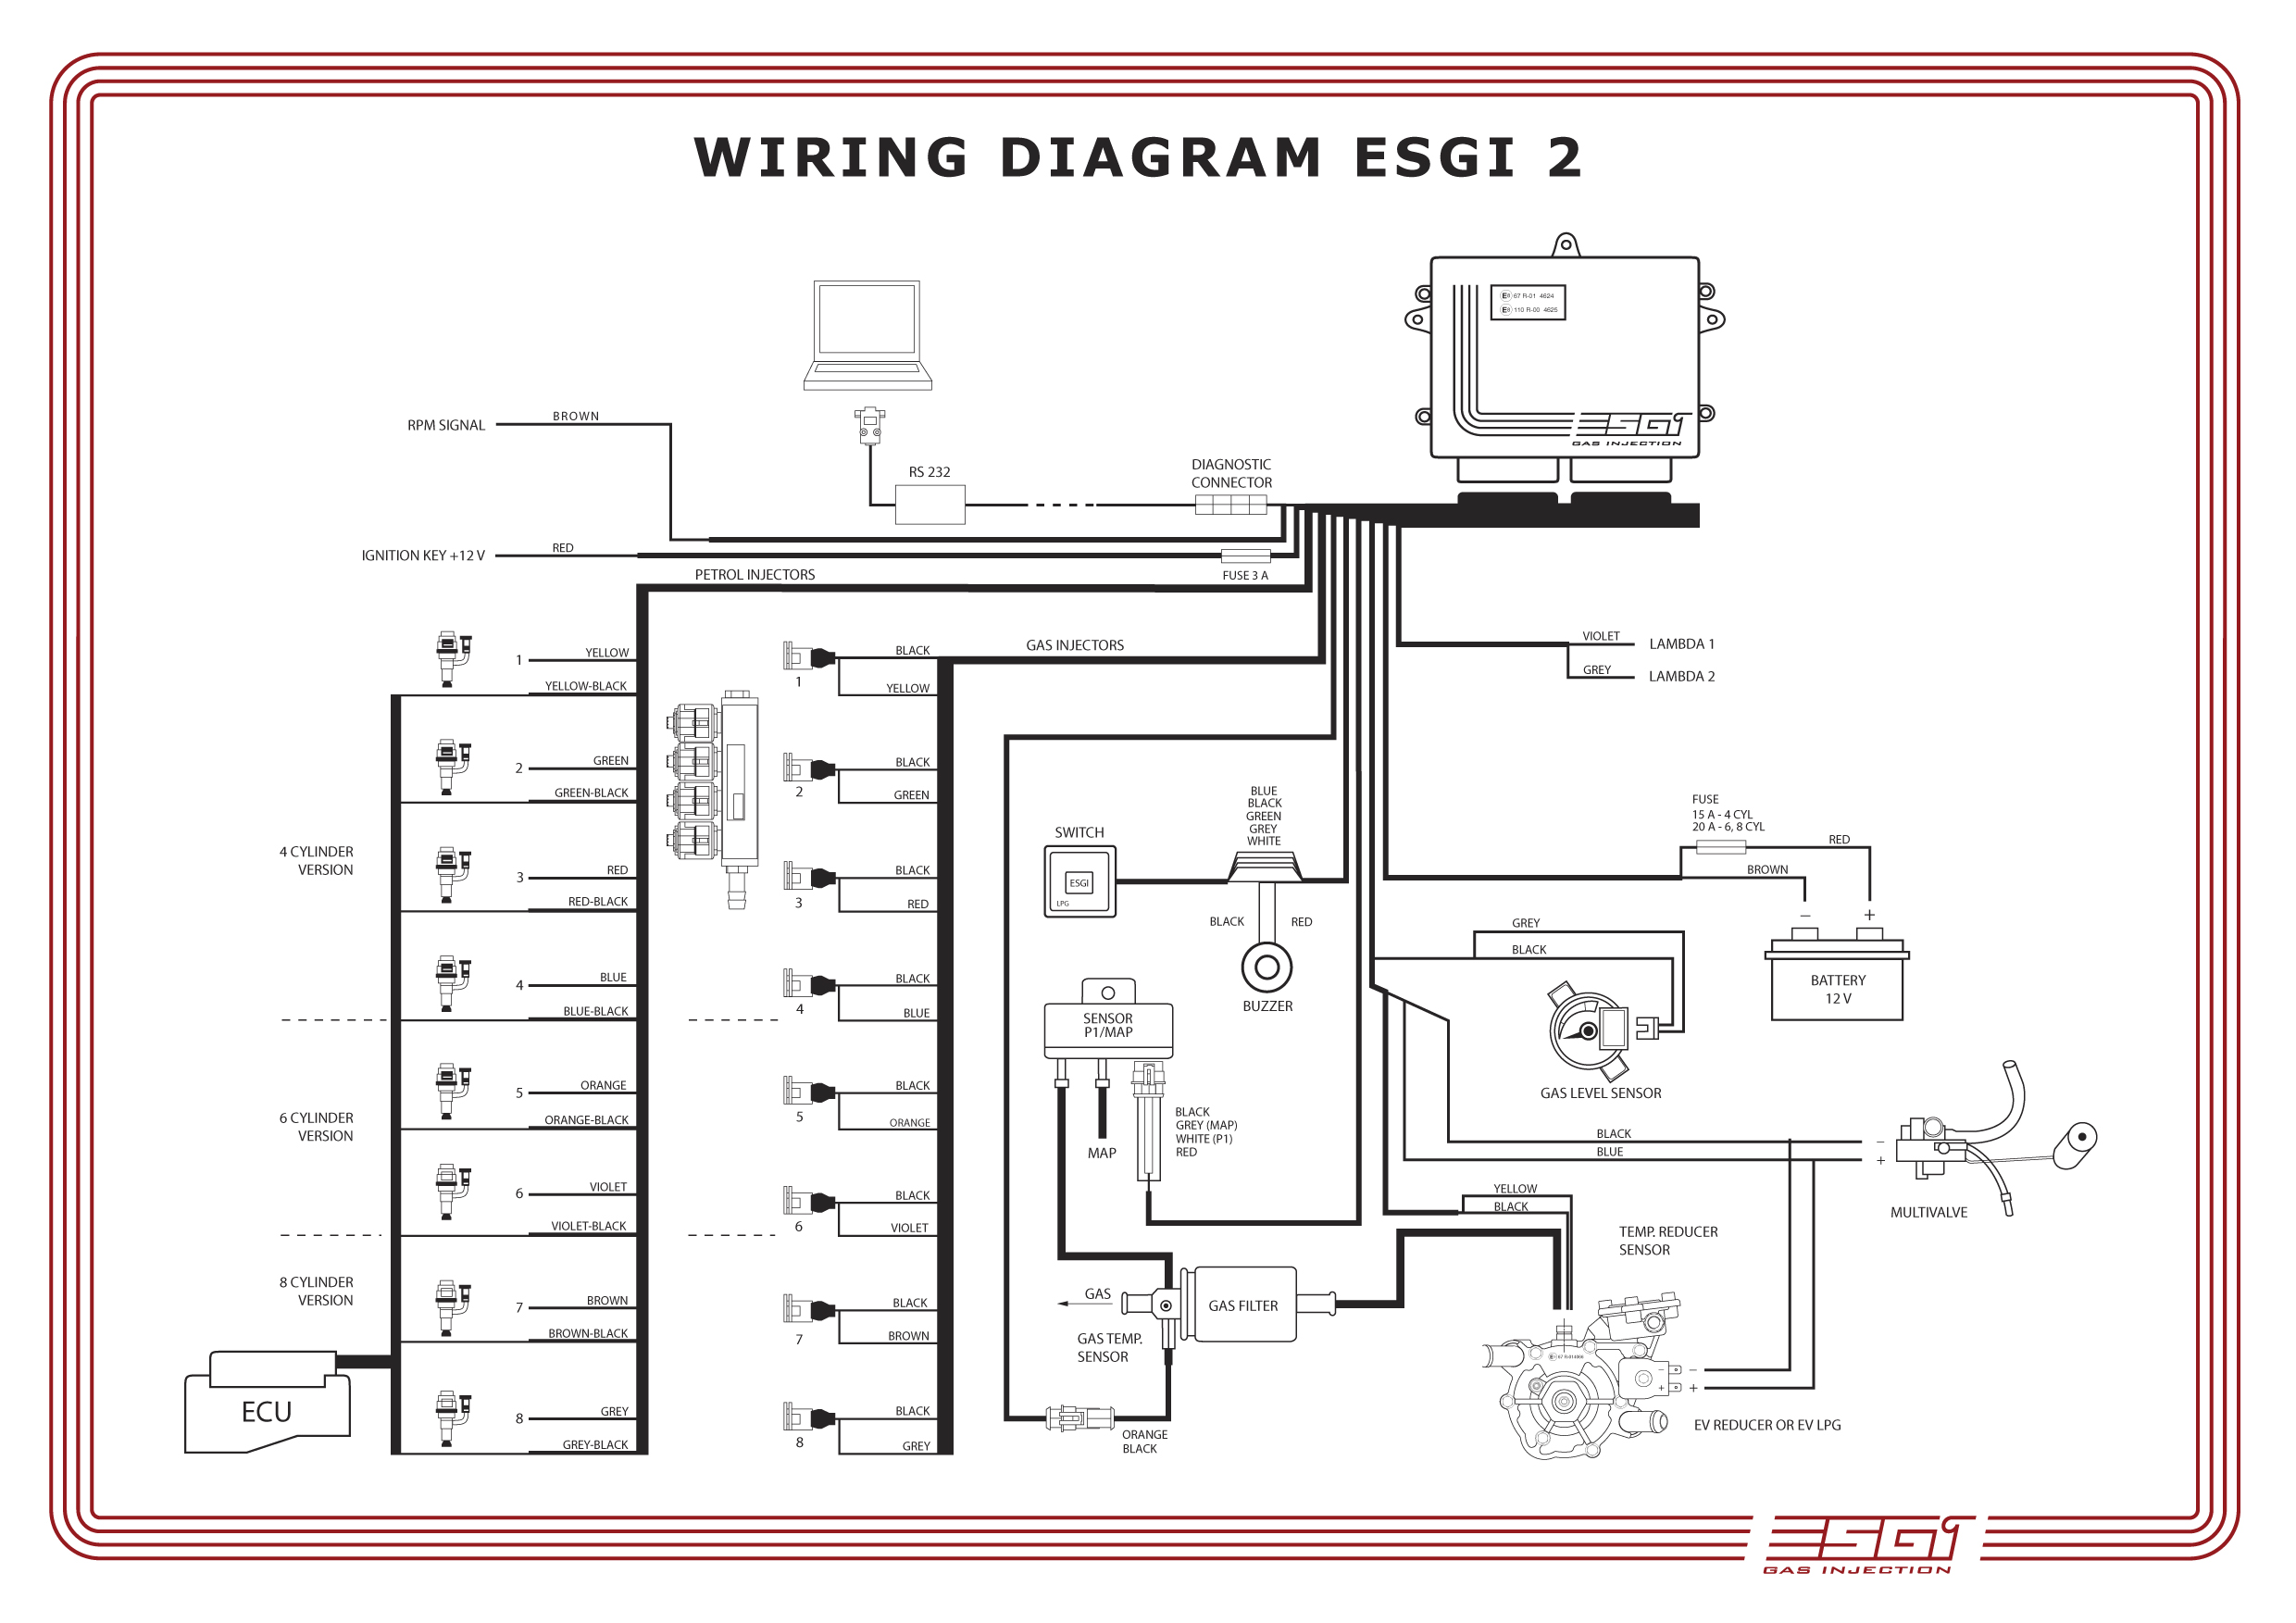 8669907000_1434397485 aeb lpg wiring diagram wiring diagram and schematic design lpg wiring diagram pdf at bakdesigns.co